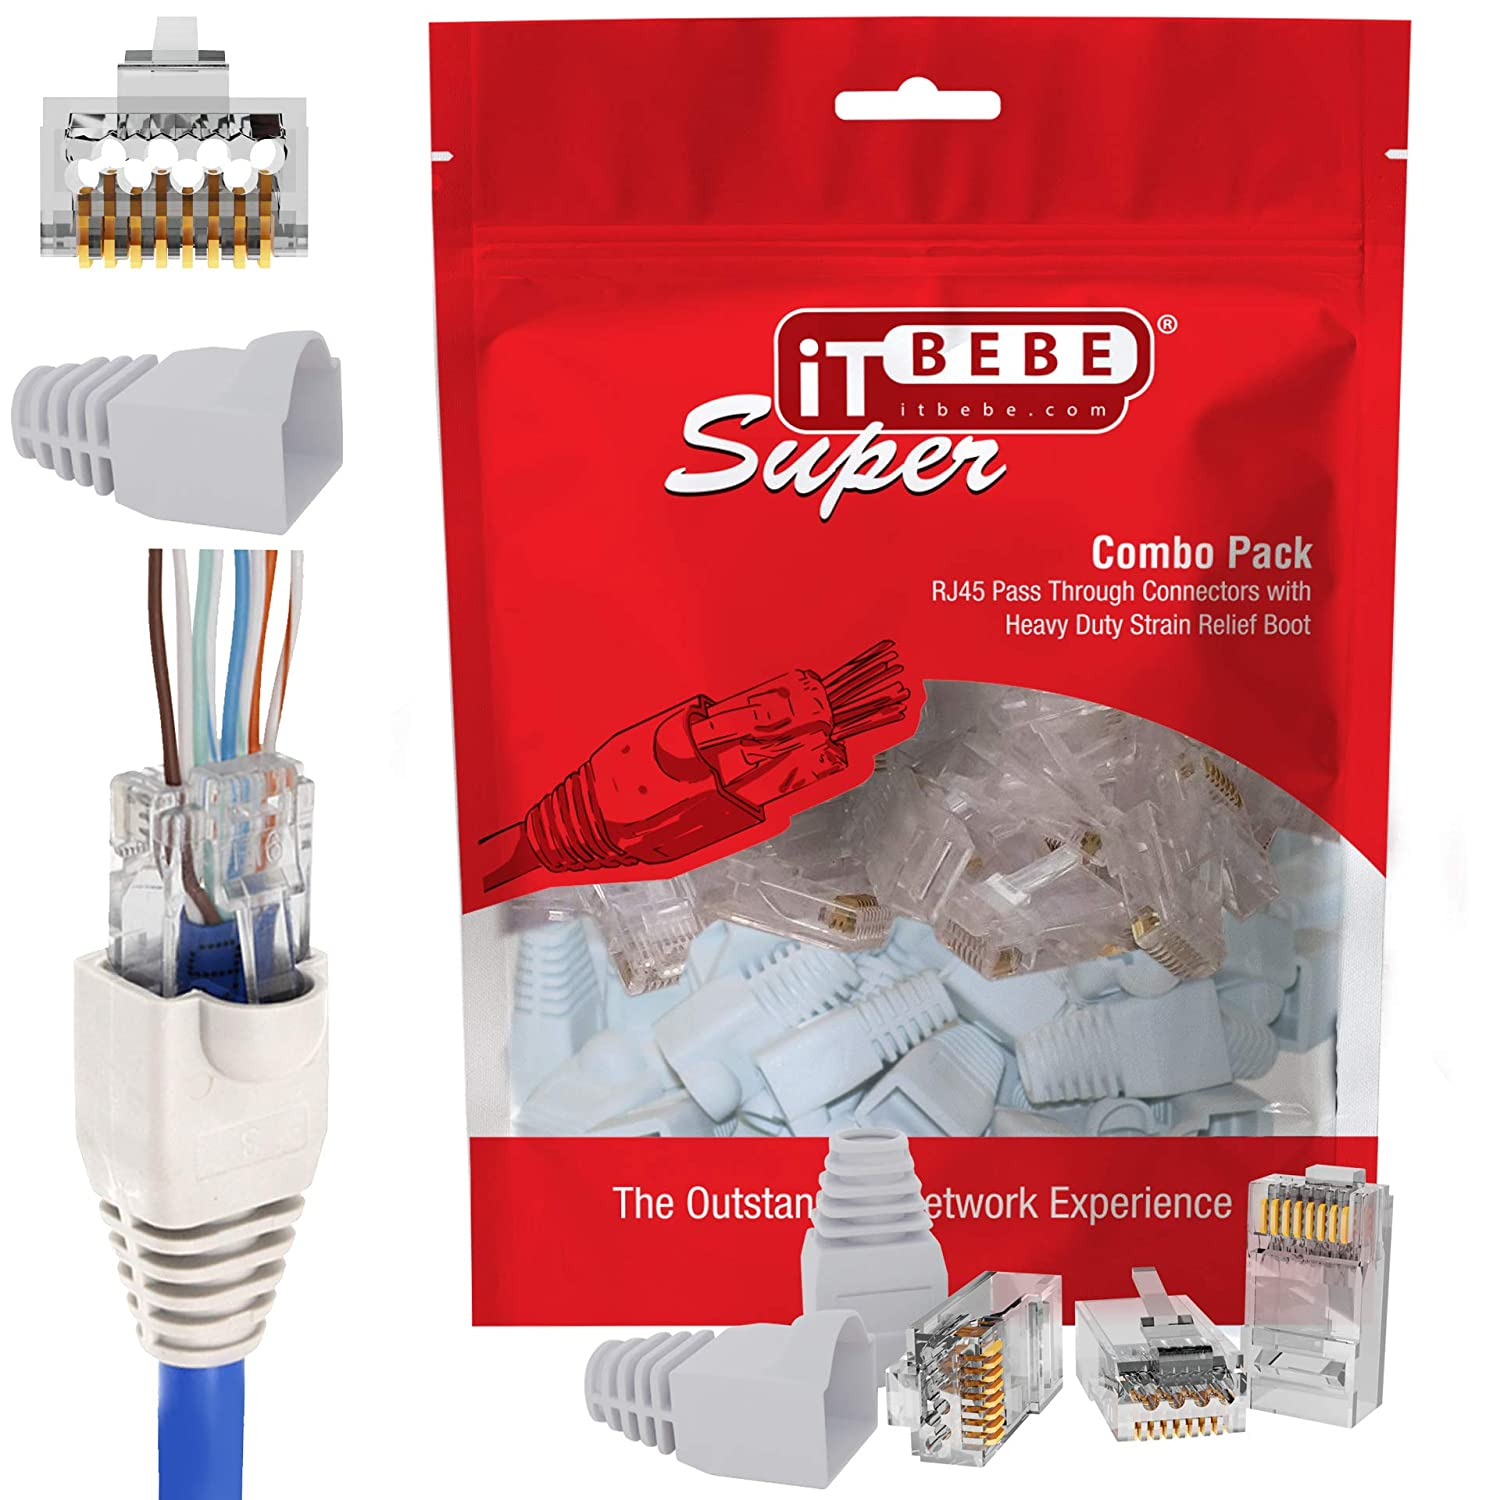 ITBEBE 30/30 RJ45 Cat6 Pass Through Connectors for 23 AWG Cables - 30 Cat6 Passthrough Connector Ends and 30 RJ45 Connectors White Strain Relief Boots for Clean, snag-Free Ethernet Patch Cord